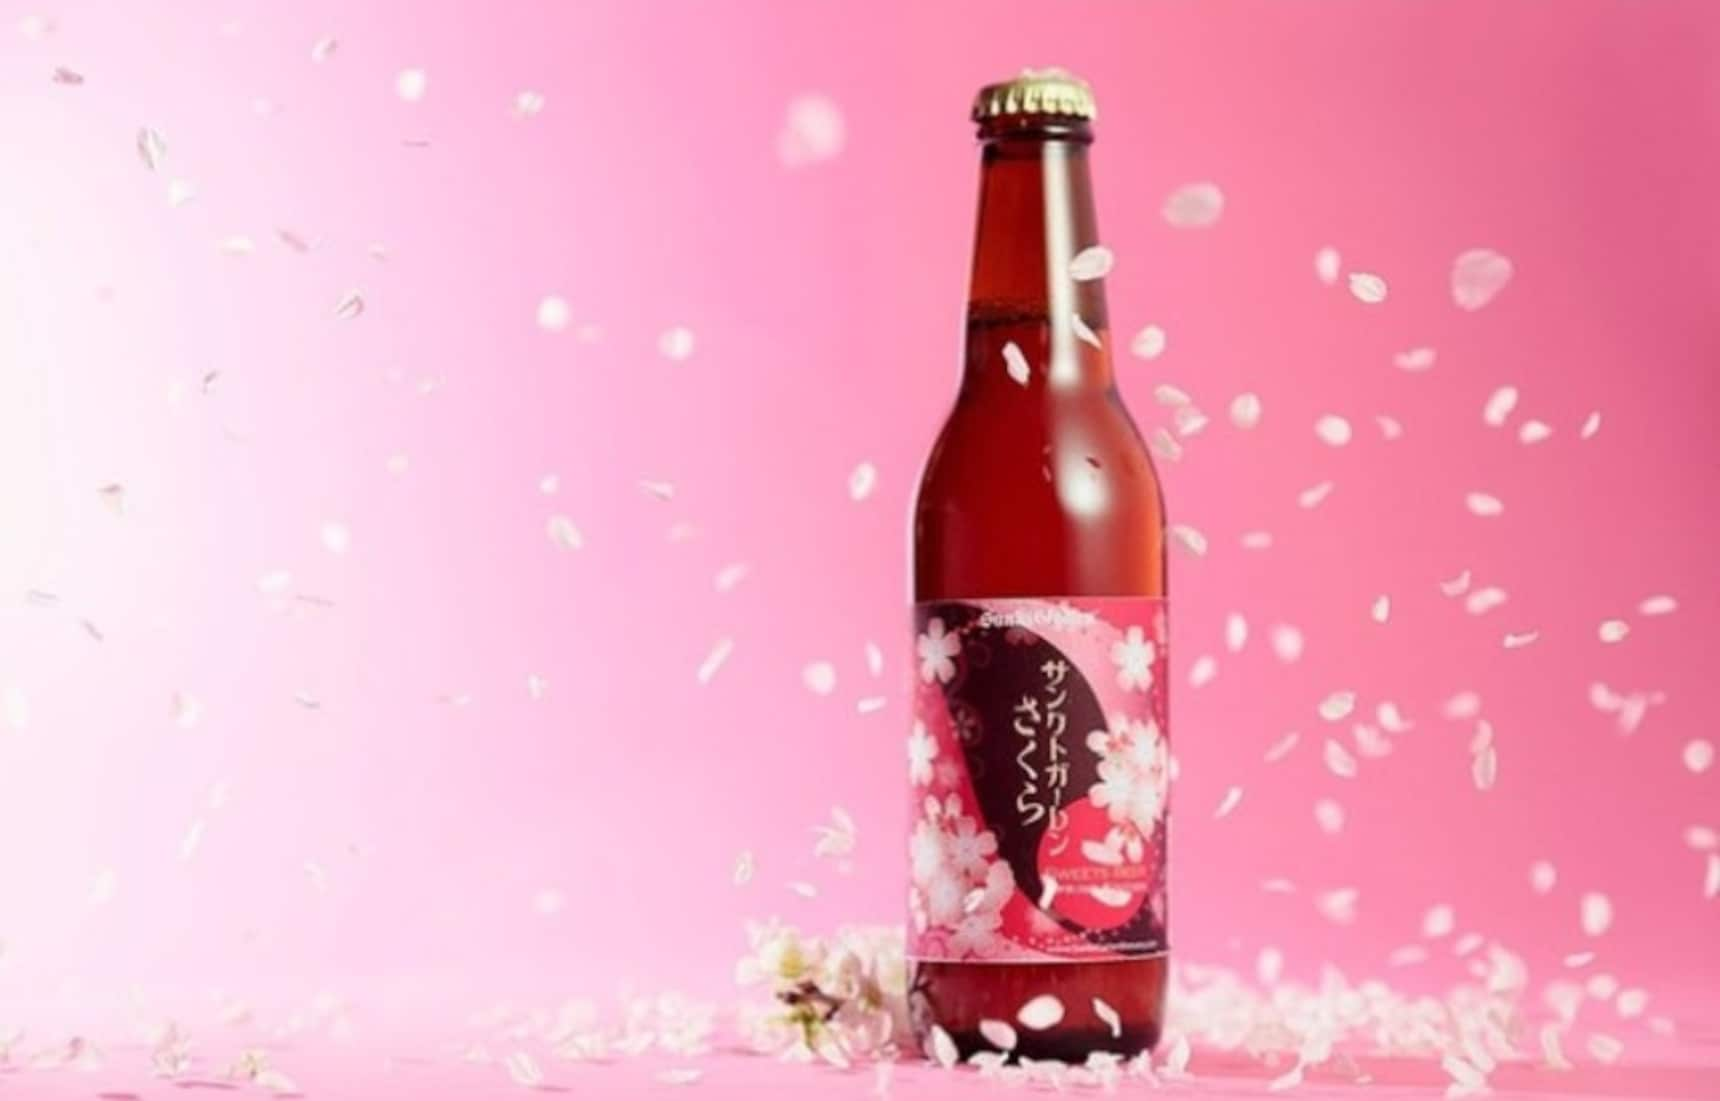 Sip on Springtime with Cherry Blossom Beer